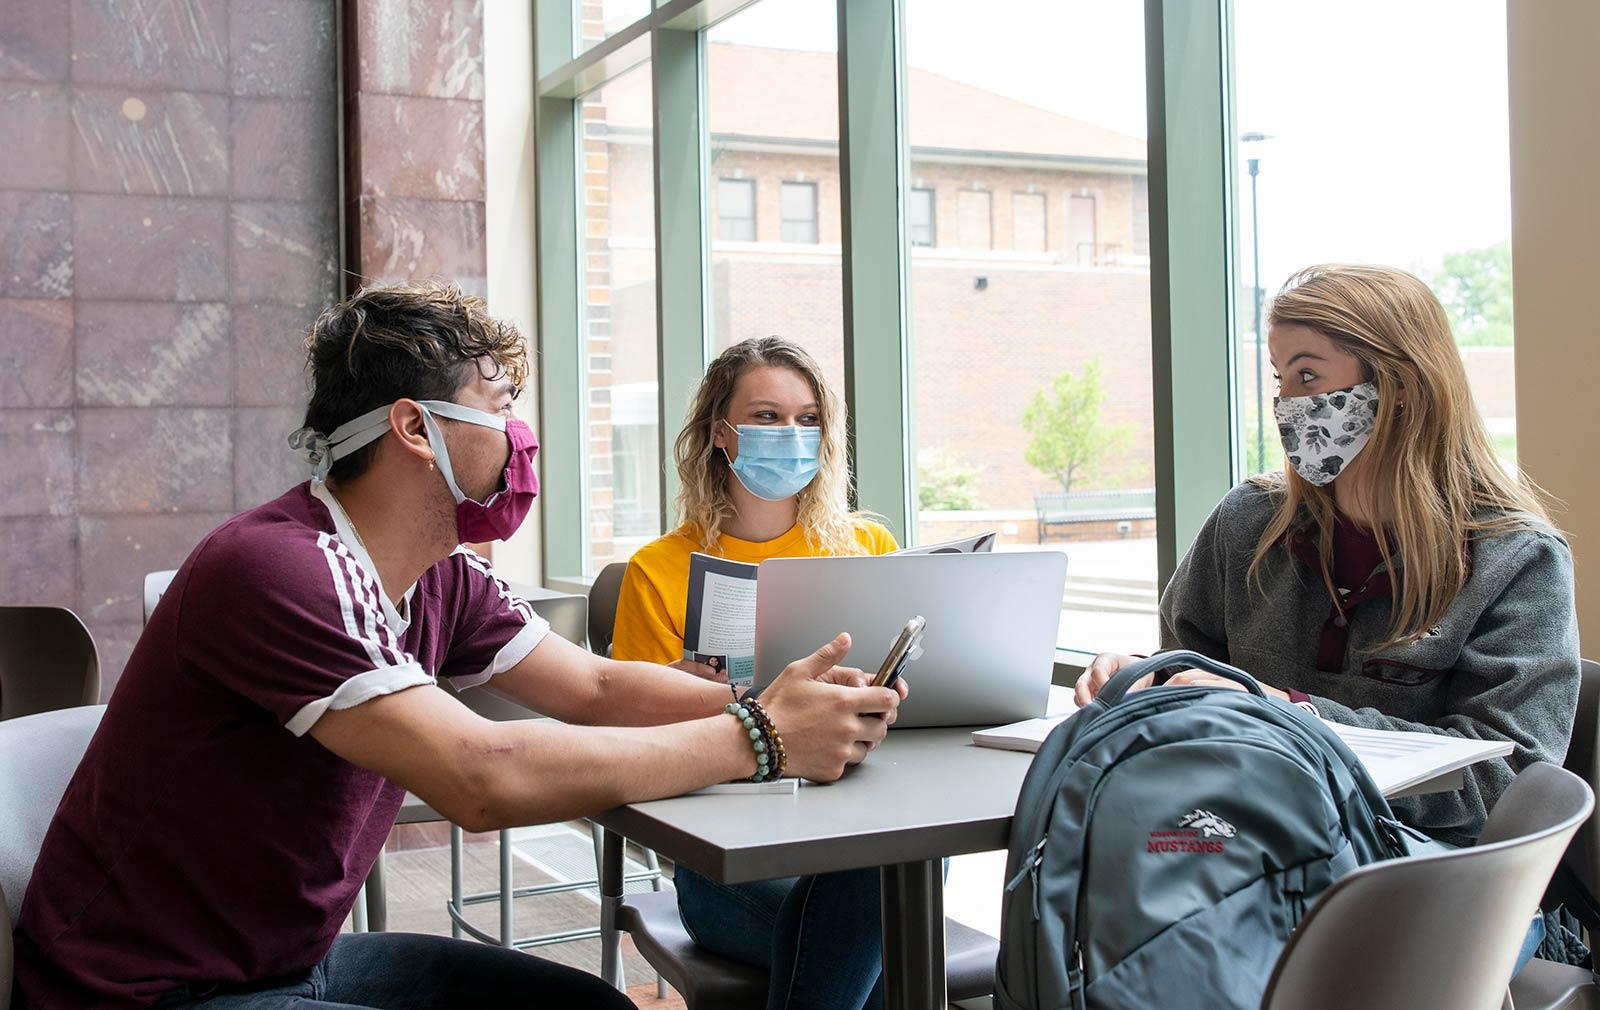 students studying with masks